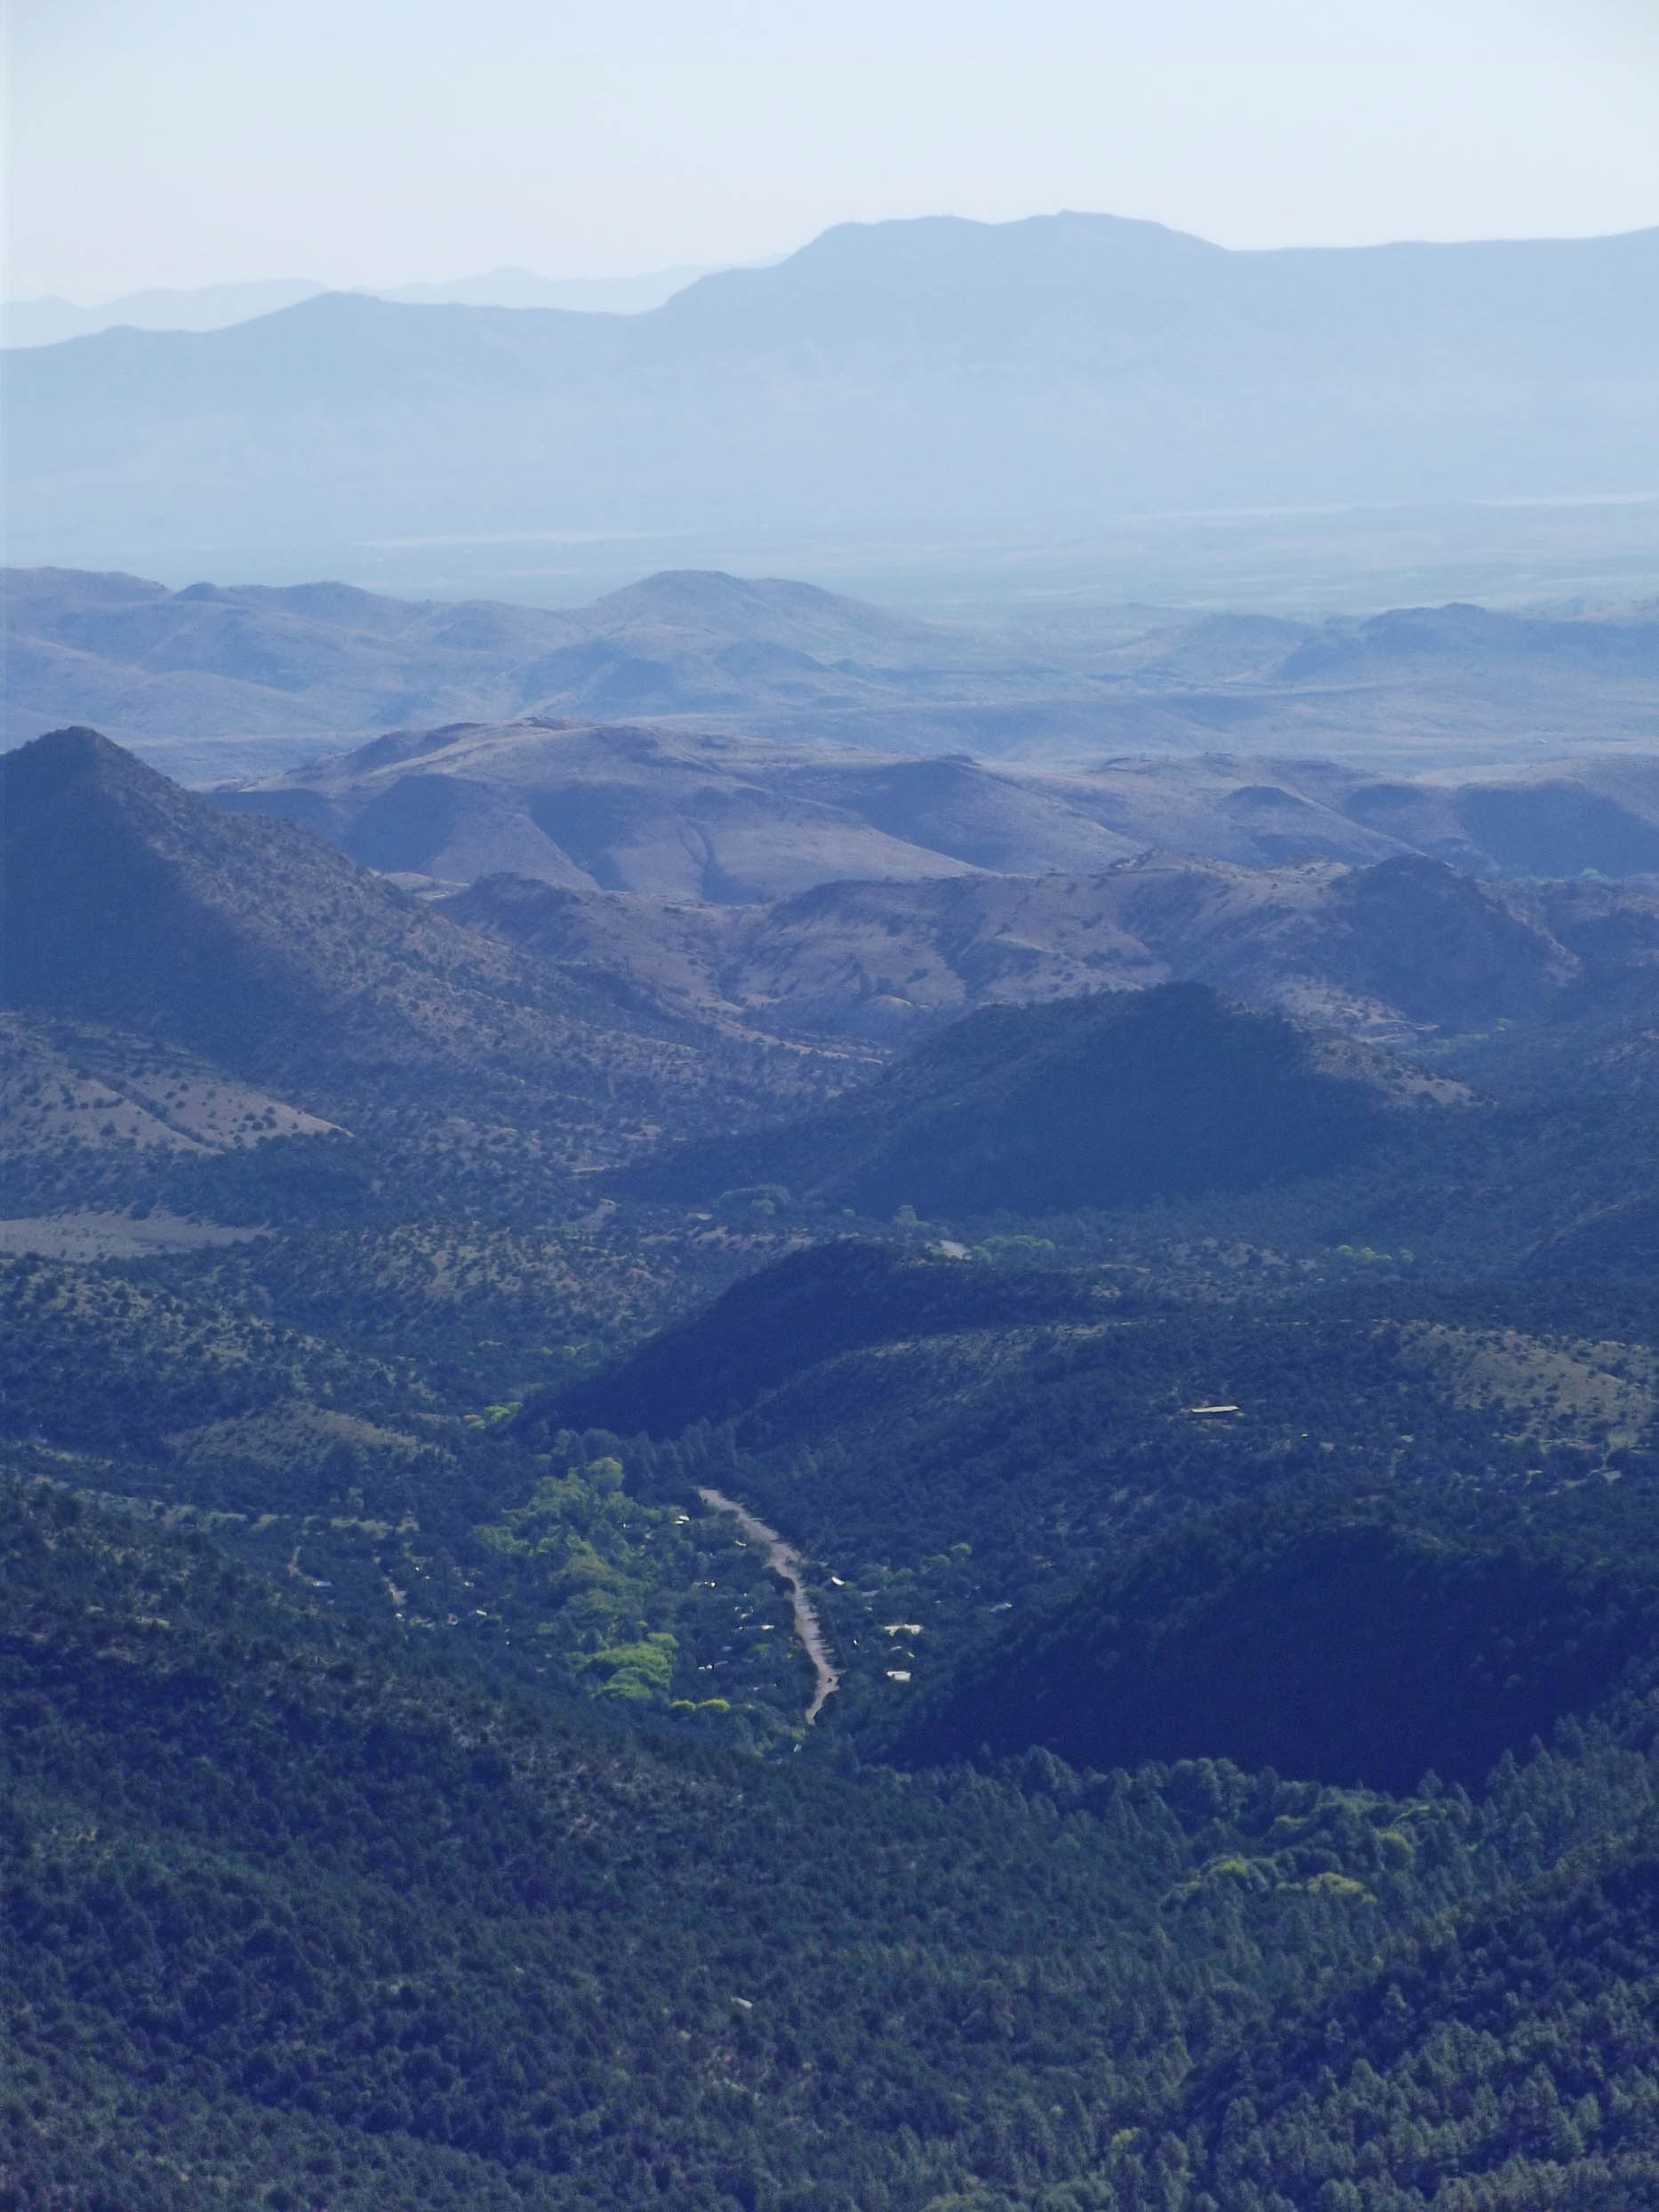 View of wooded hills and distant mountains